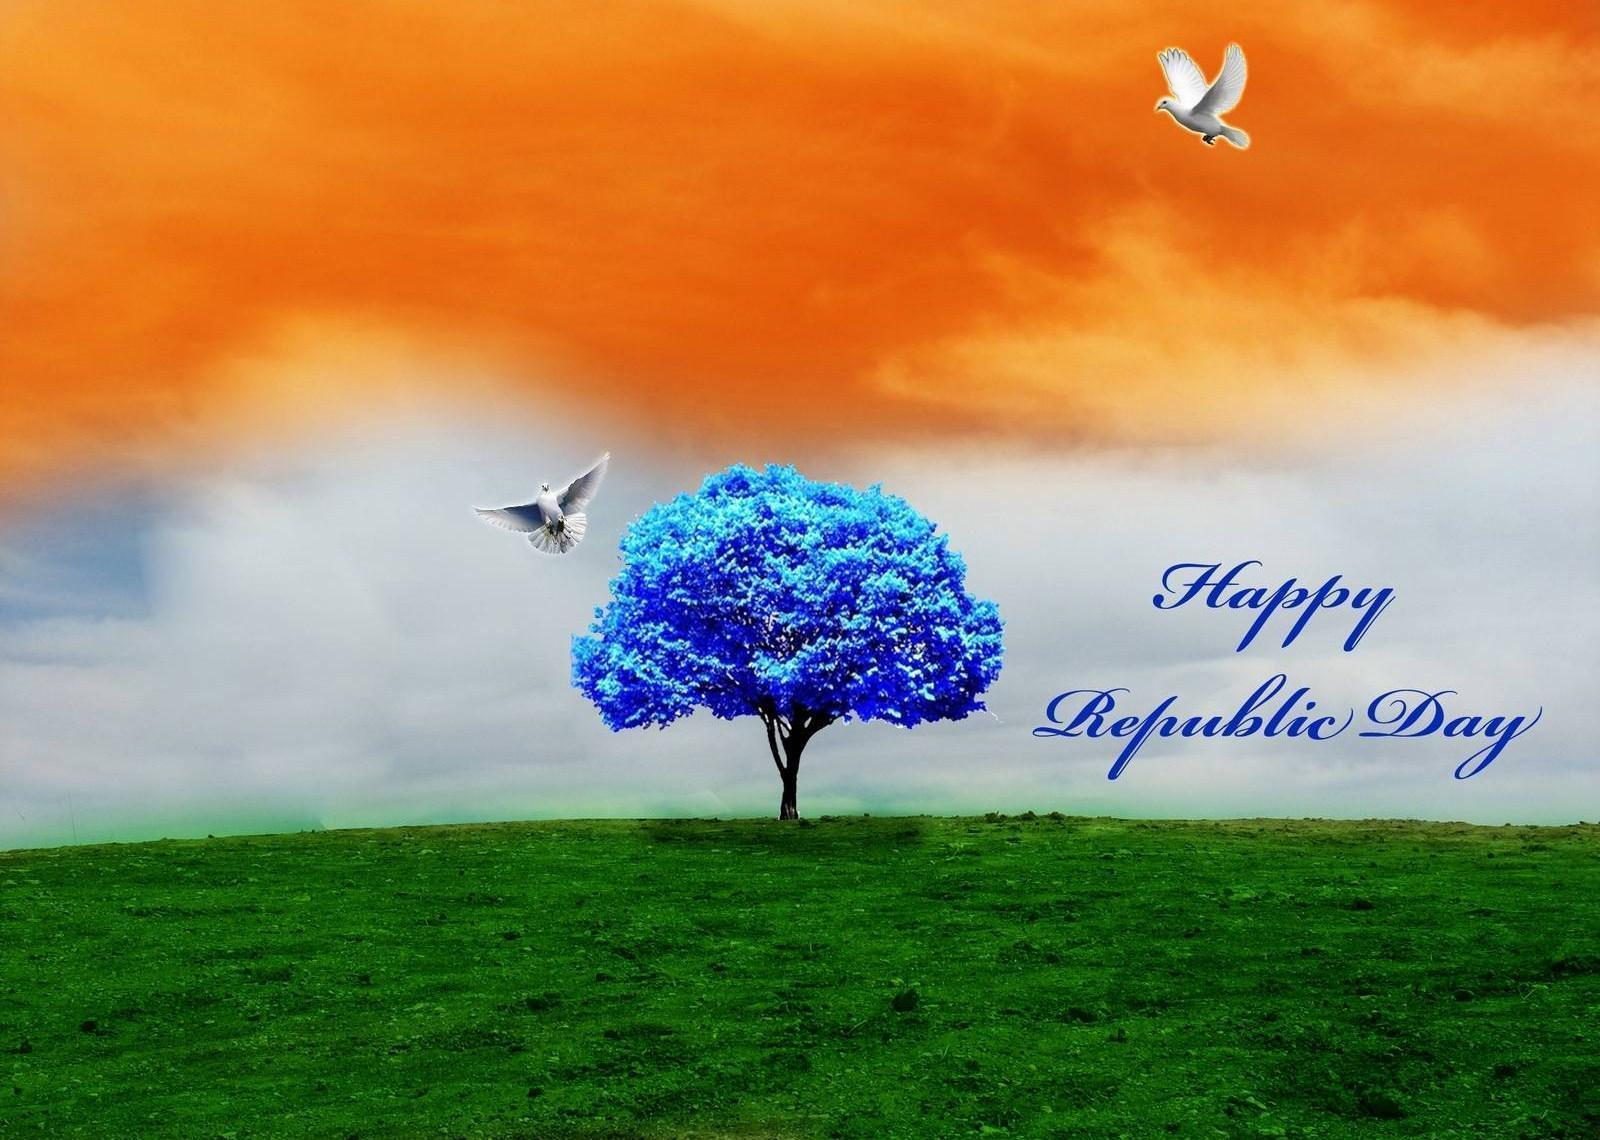 Indian Flag Background Hd: Indian Flag Wallpapers 2015